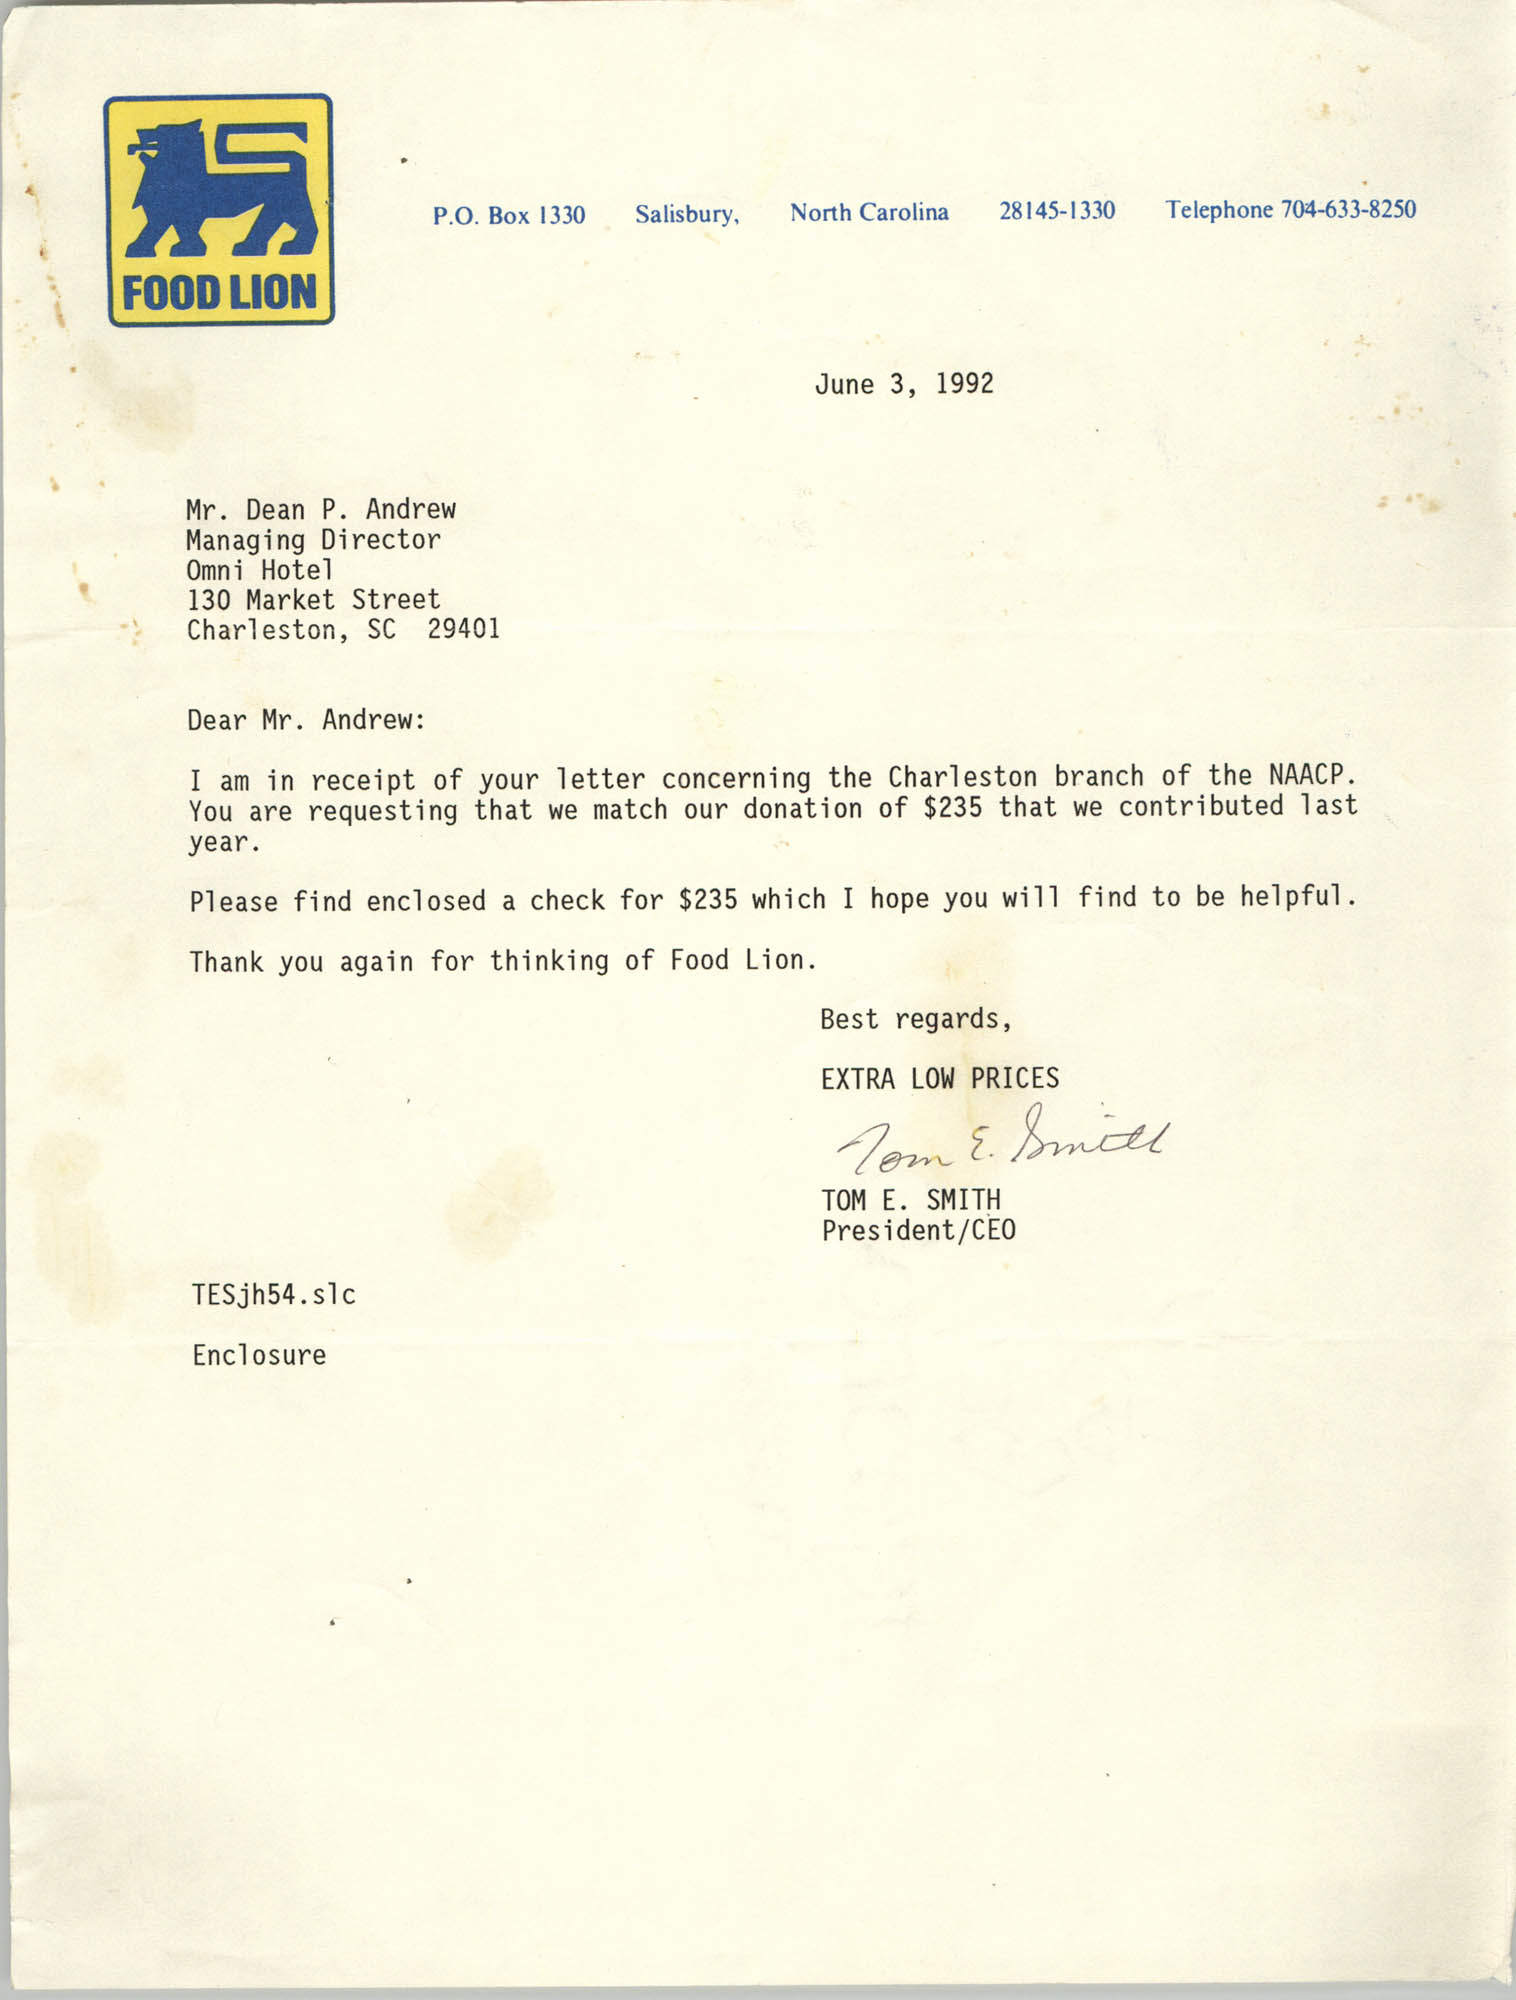 Letter from Tom E. Smith to Dean P. Andrew, June 3, 1992